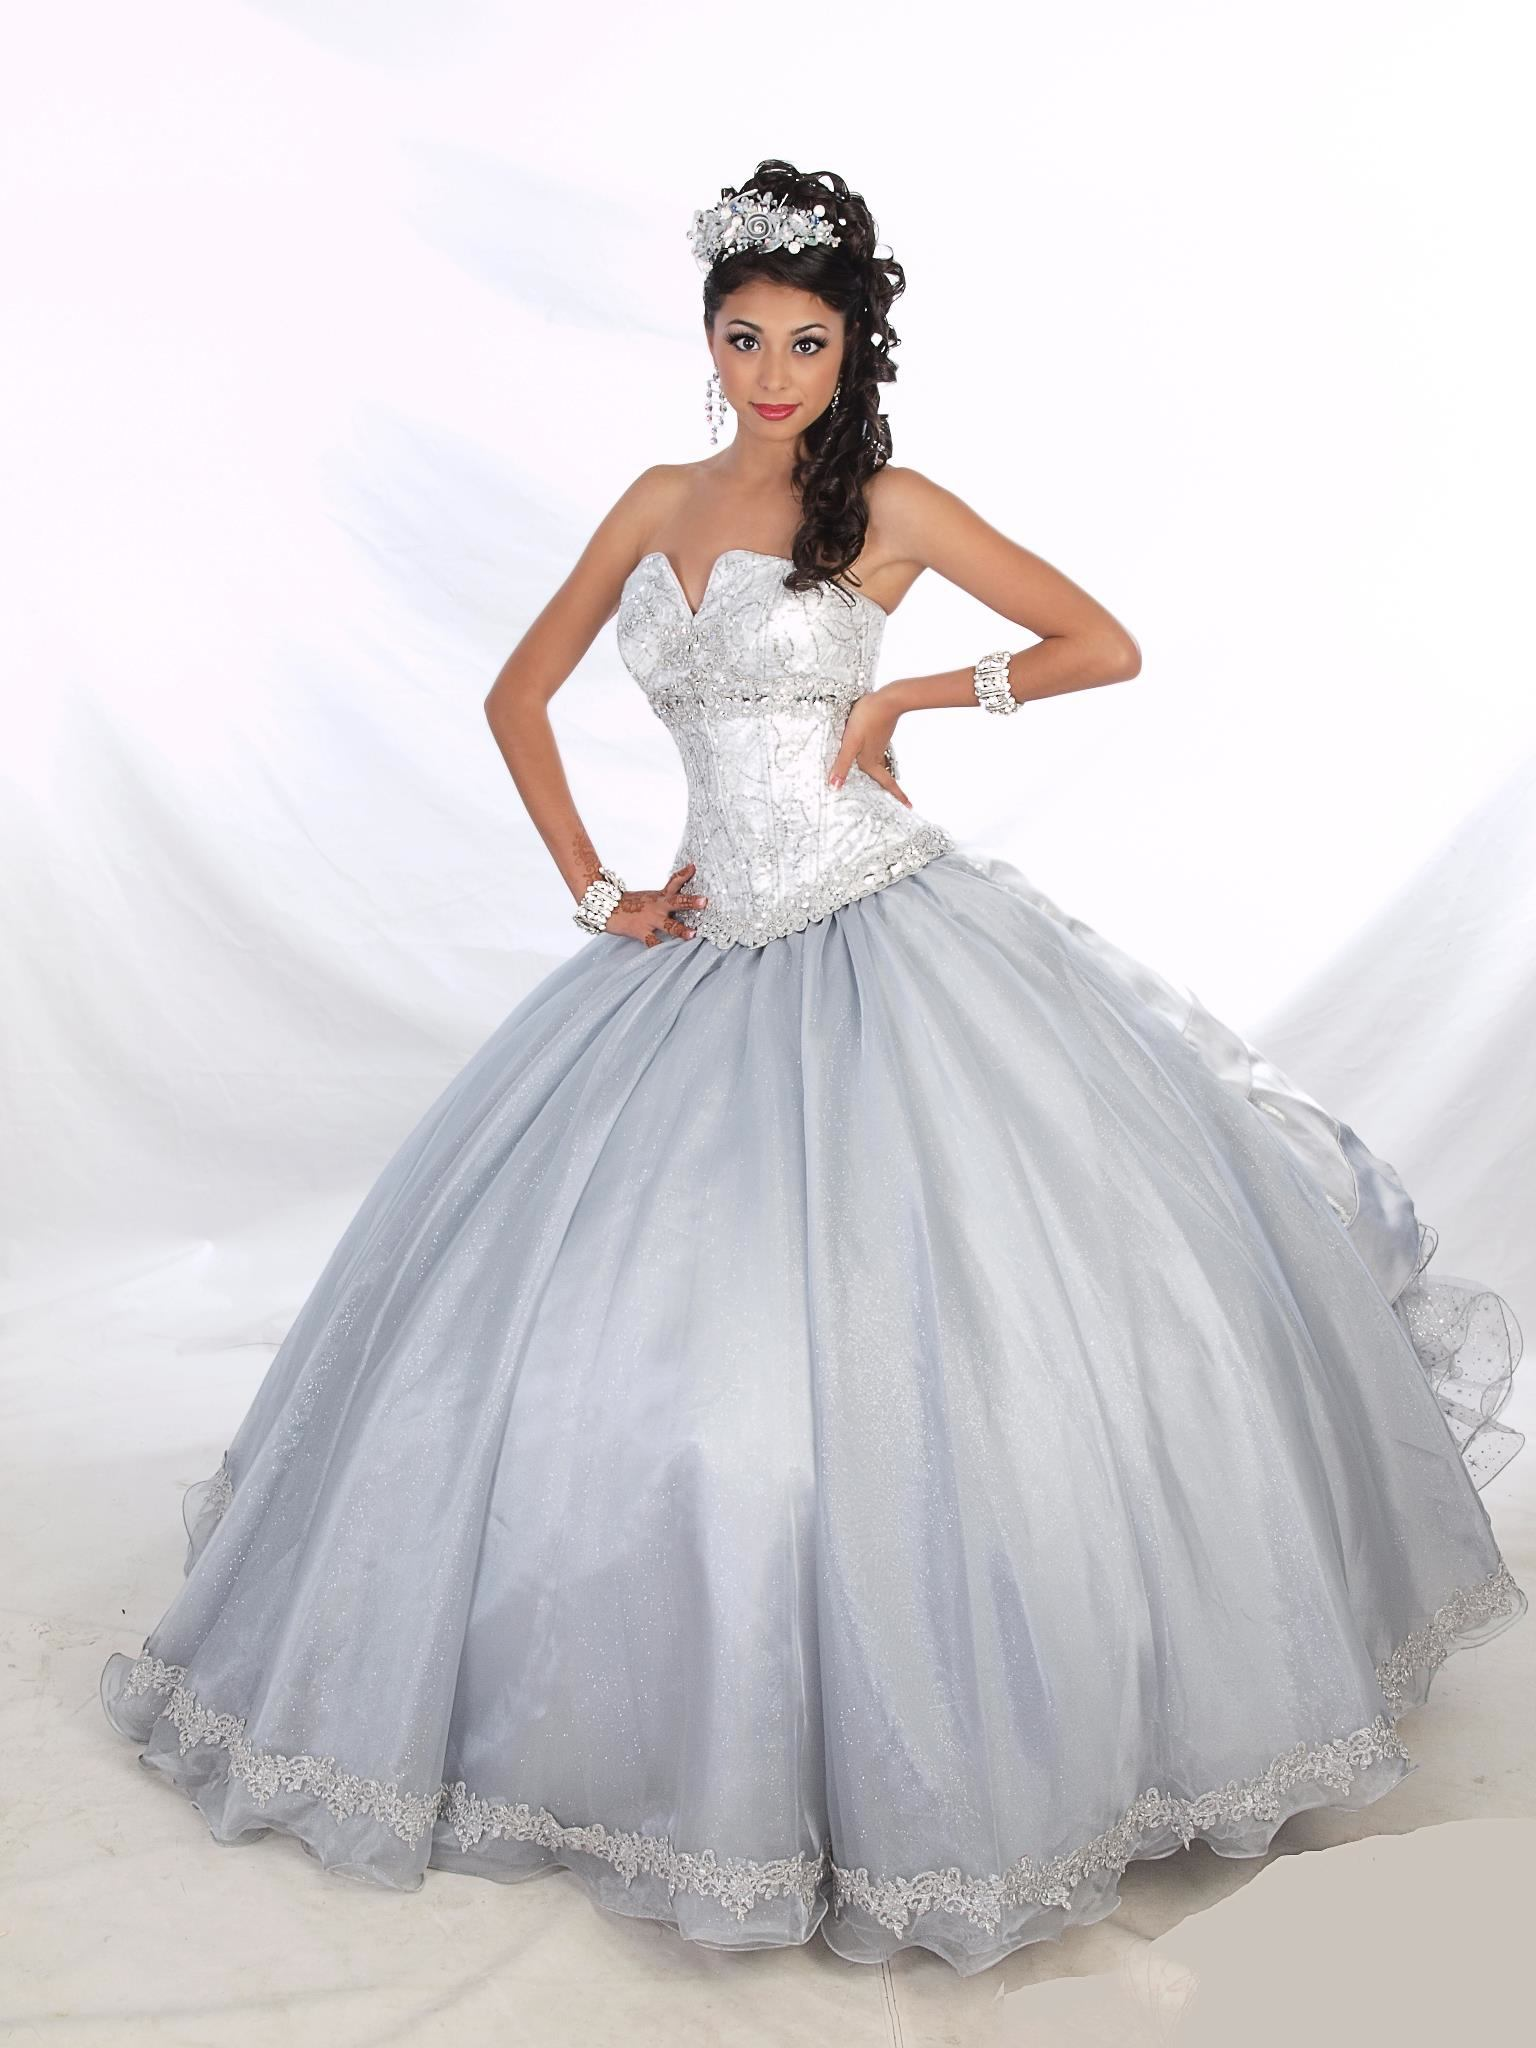 Quinceanera dresses and dress shops in Houston TX